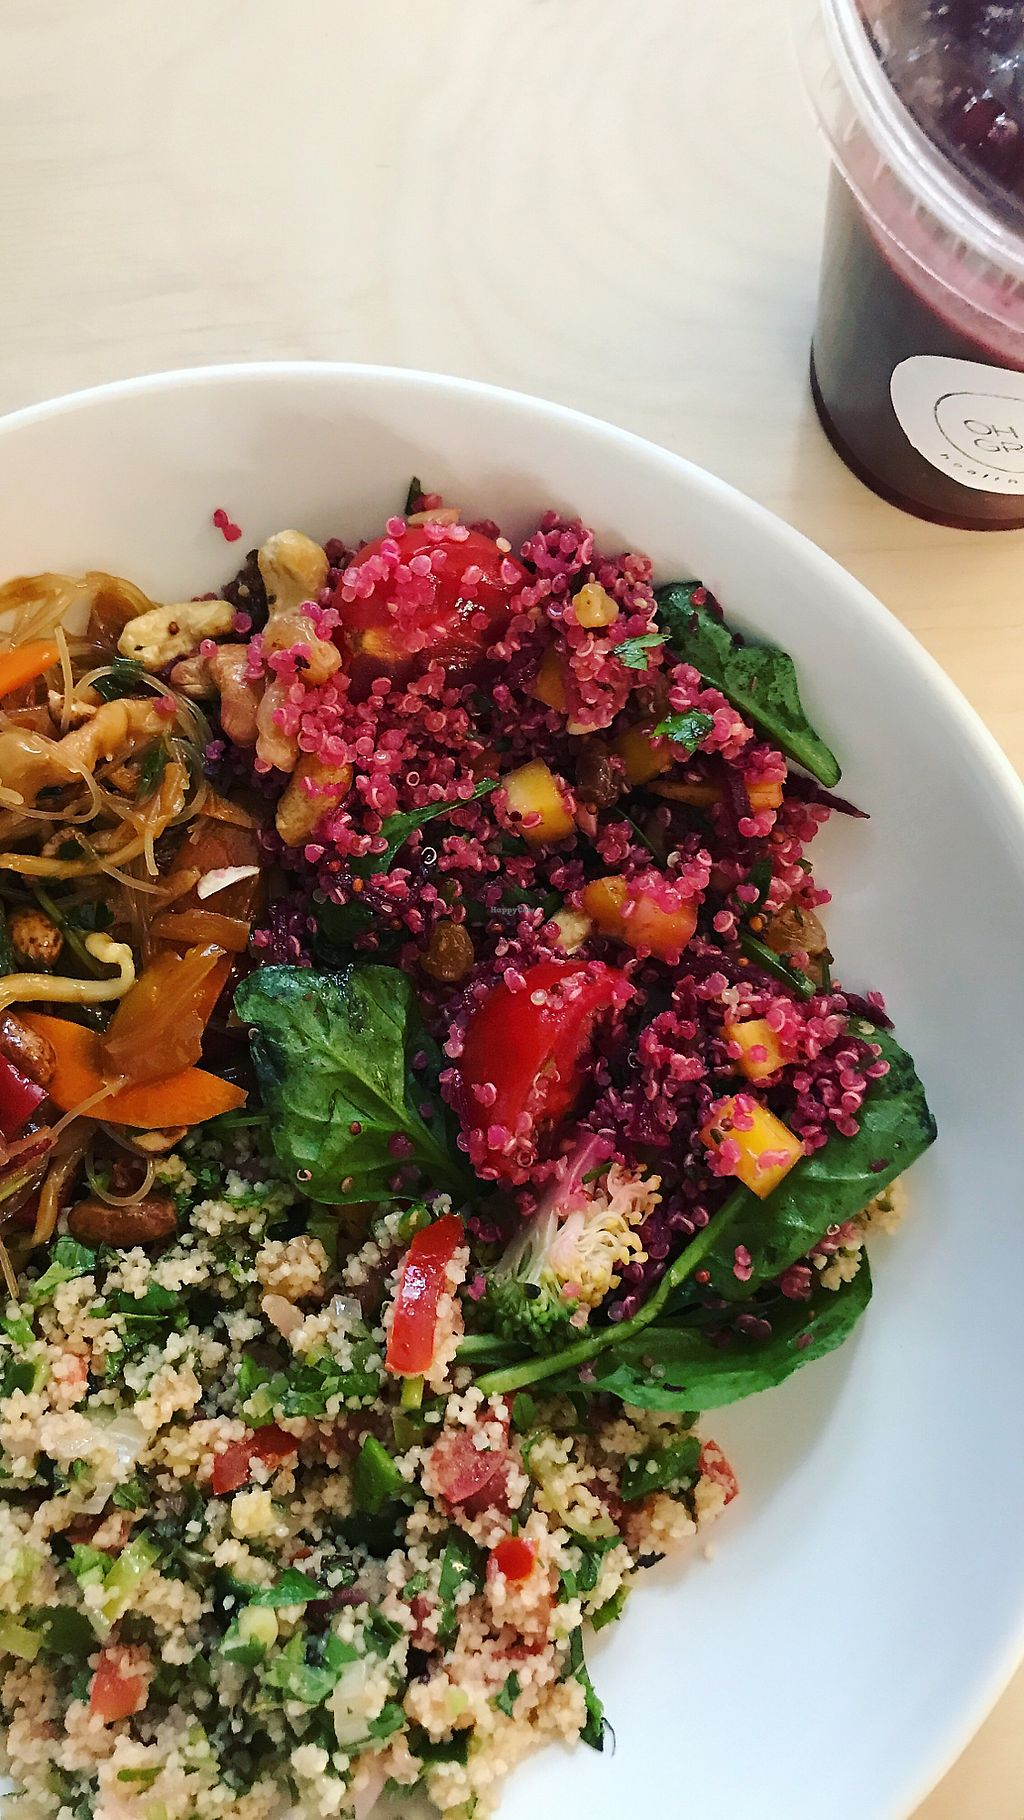 """Photo of Oh My Green  by <a href=""""/members/profile/mabbonizio"""">mabbonizio</a> <br/>Mixed salads and acai smoothie :) <br/> August 25, 2017  - <a href='/contact/abuse/image/88811/296967'>Report</a>"""